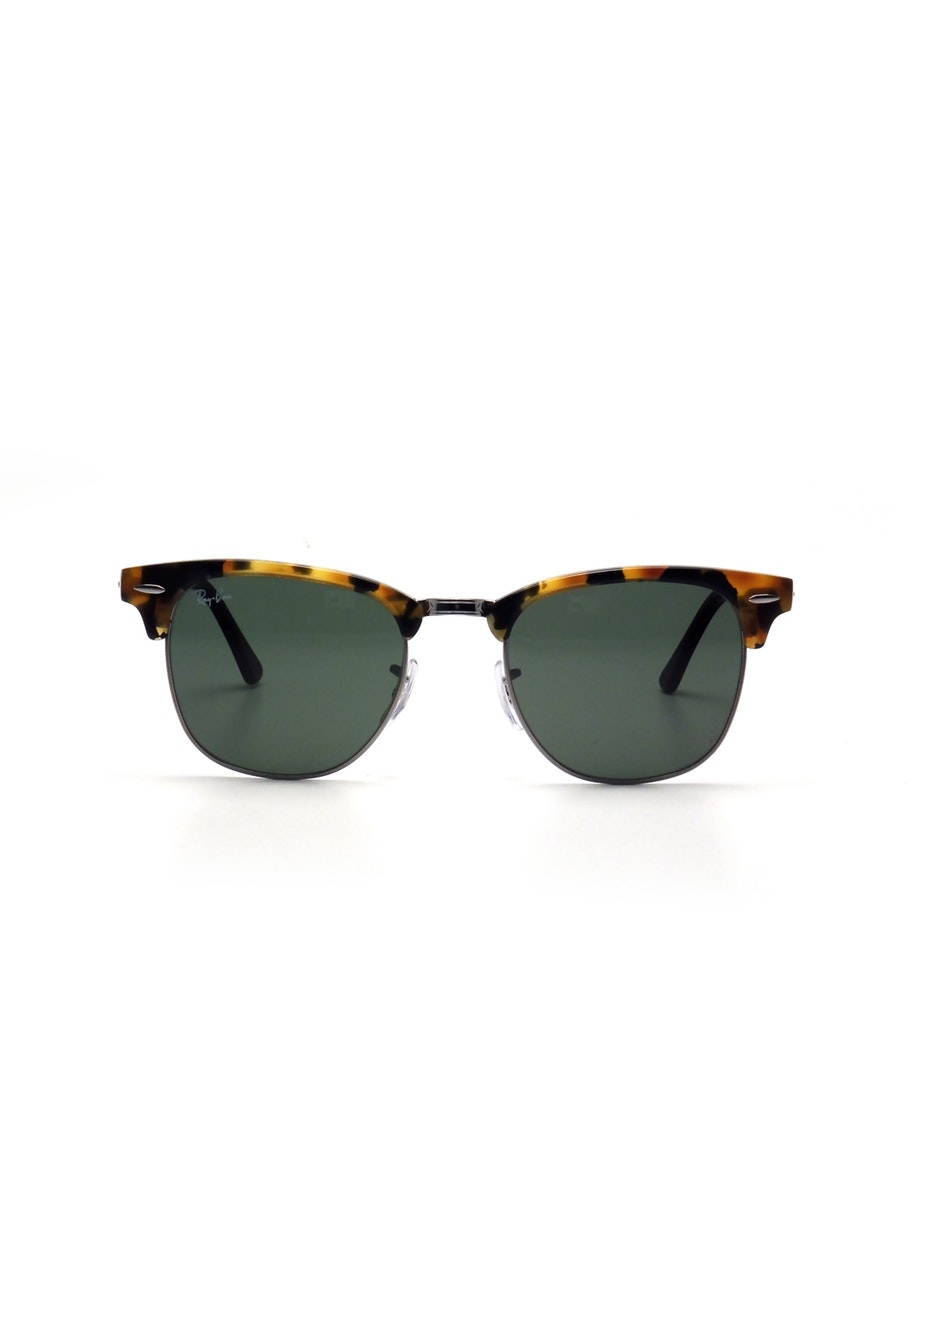 Ray-Ban - RB3016 1157/51 - Clubmaster - Fleck Tort